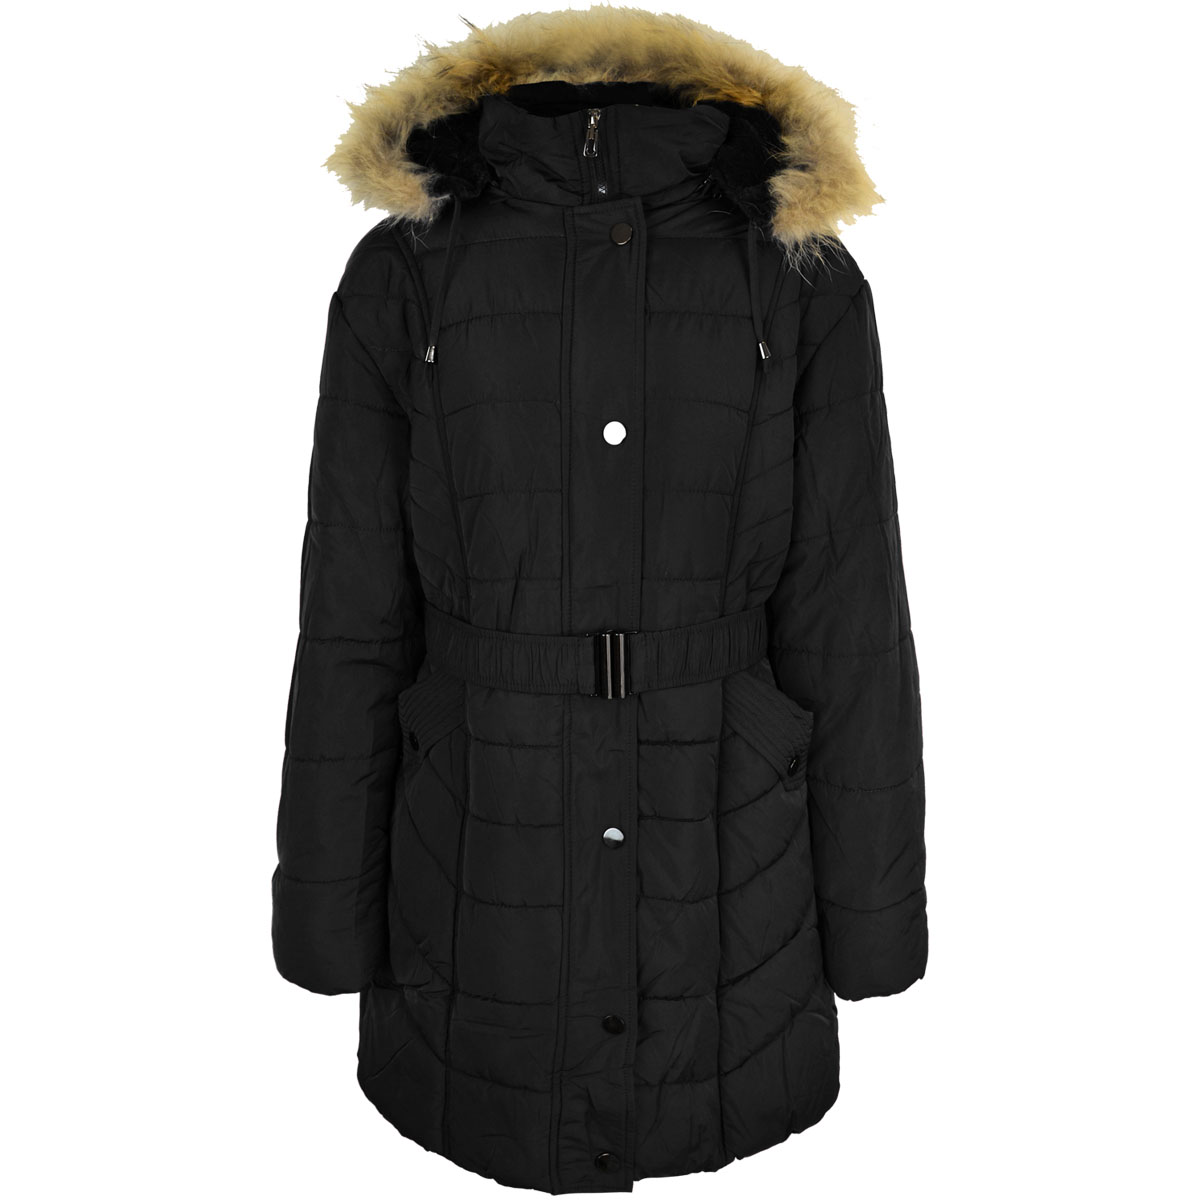 thumbnail 3 - Womens-Ladies-Plus-Over-Size-Winter-Long-Jacket-Puffer-Coat-Detachable-Hood